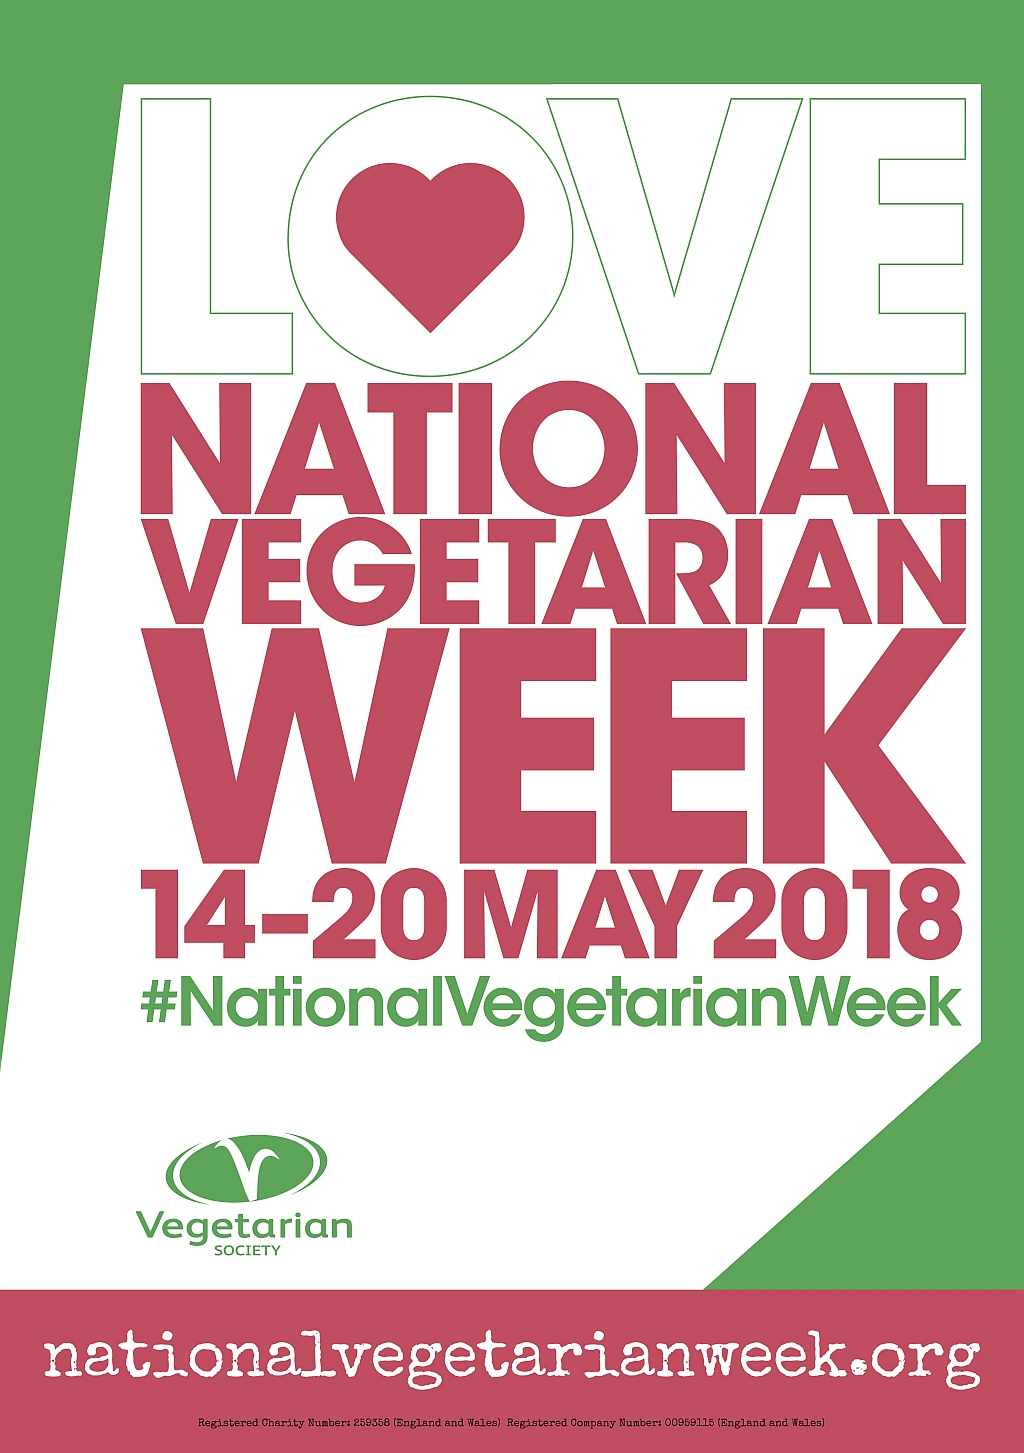 National Vegetarian Week 2018